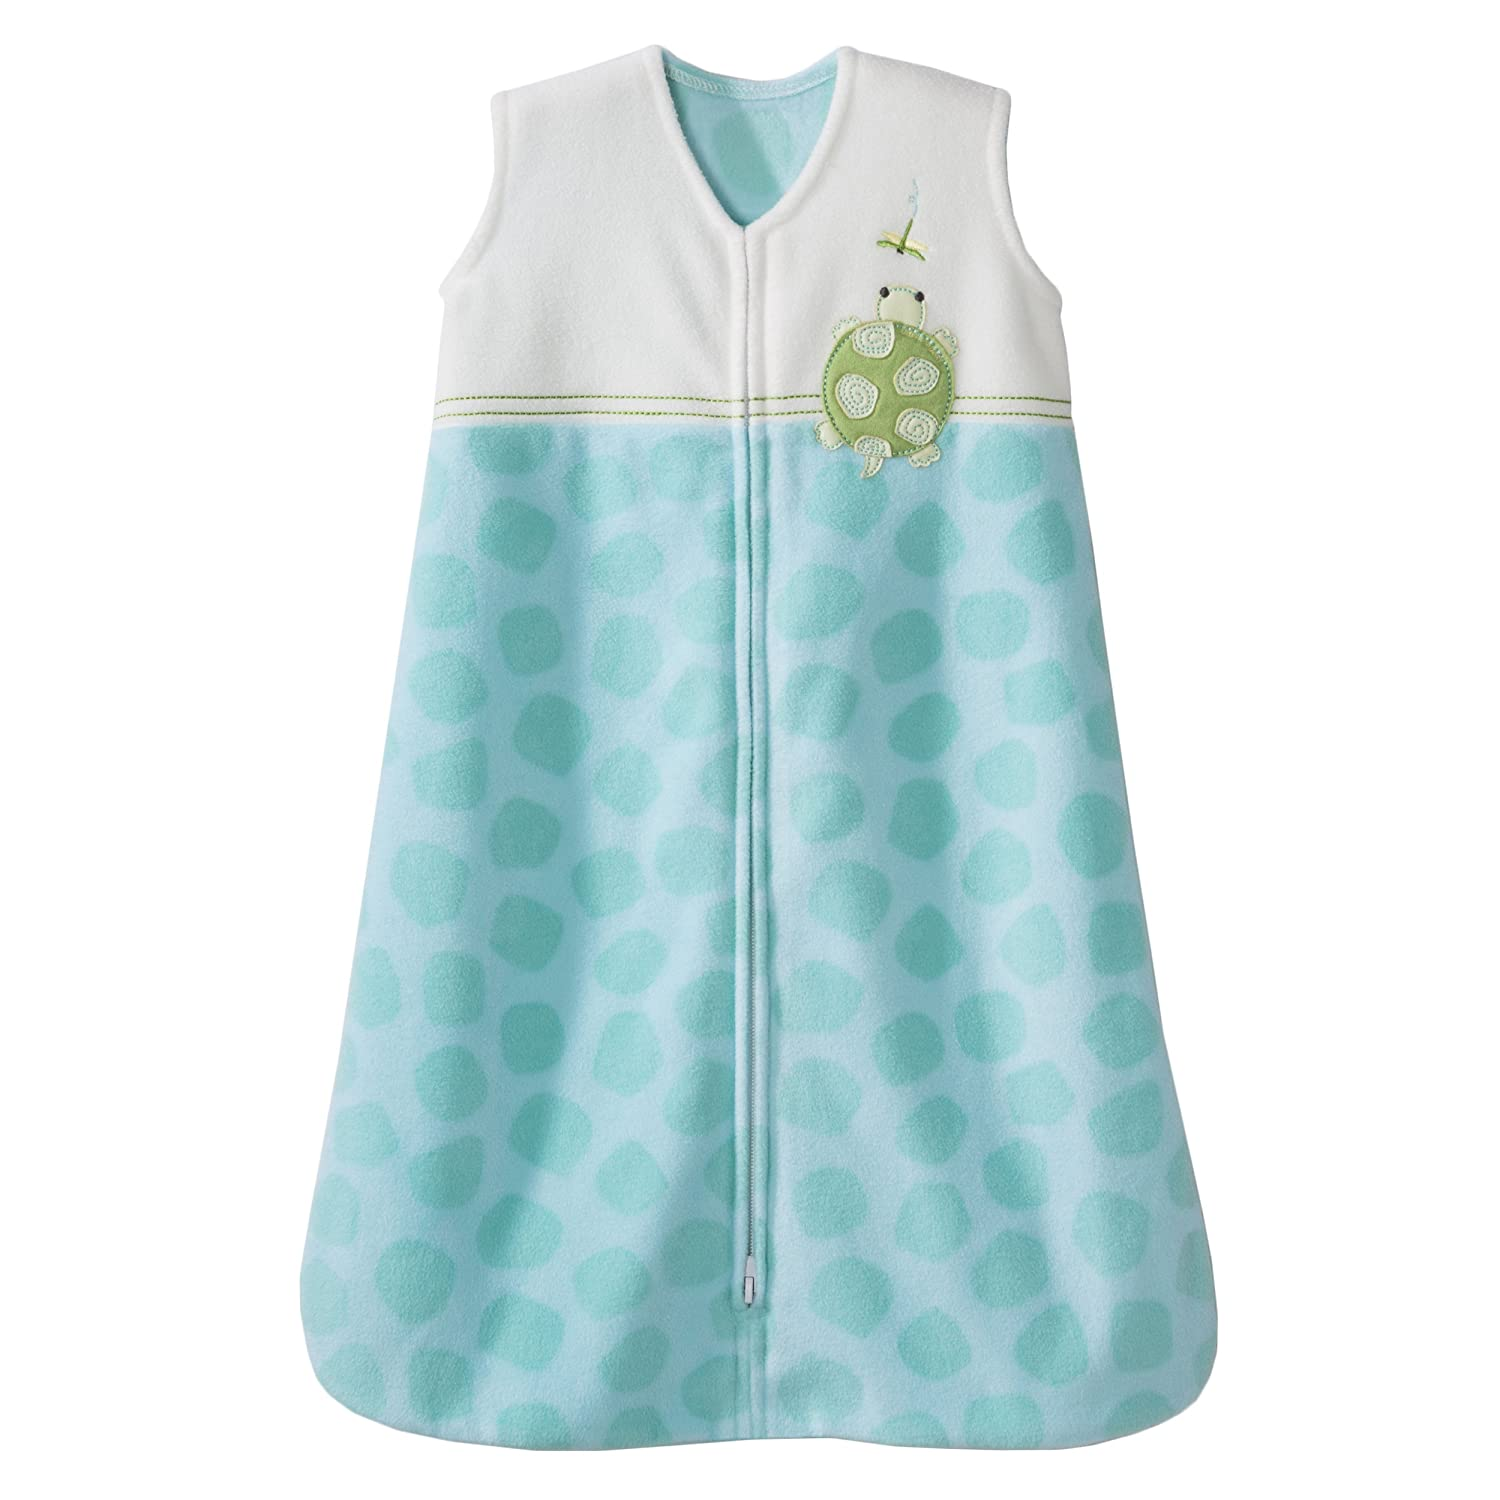 Amazon.com : HALO SleepSack Micro Fleece Wearable Blanket, Green, Small (Discontinued by Manufacturer) : Nursery Blankets : Baby